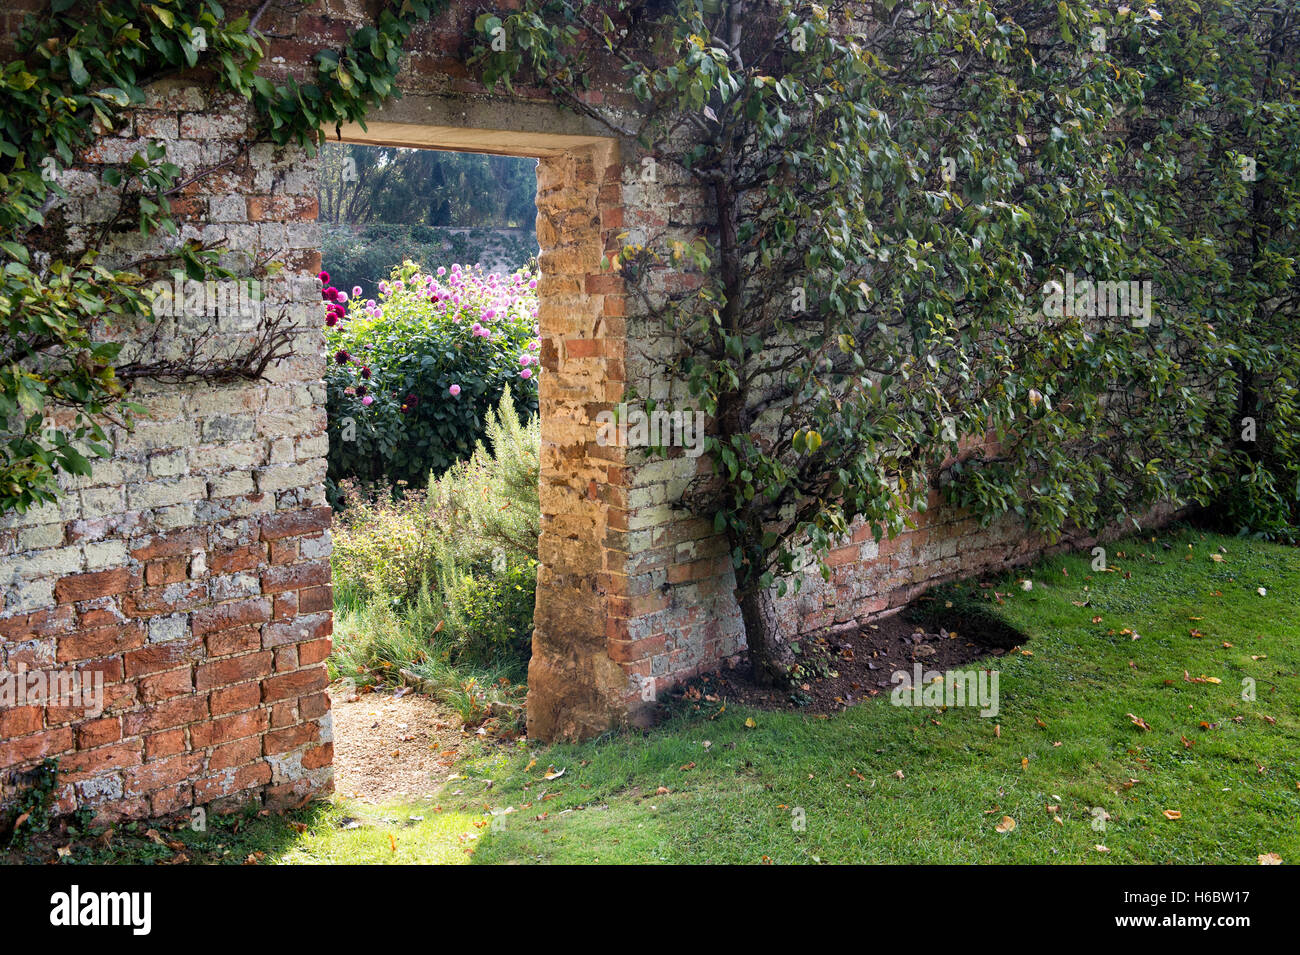 Fan trained fruit tree, doorway and flower garden in autumn in Rousham House walled garden. Oxfordshire, England - Stock Image